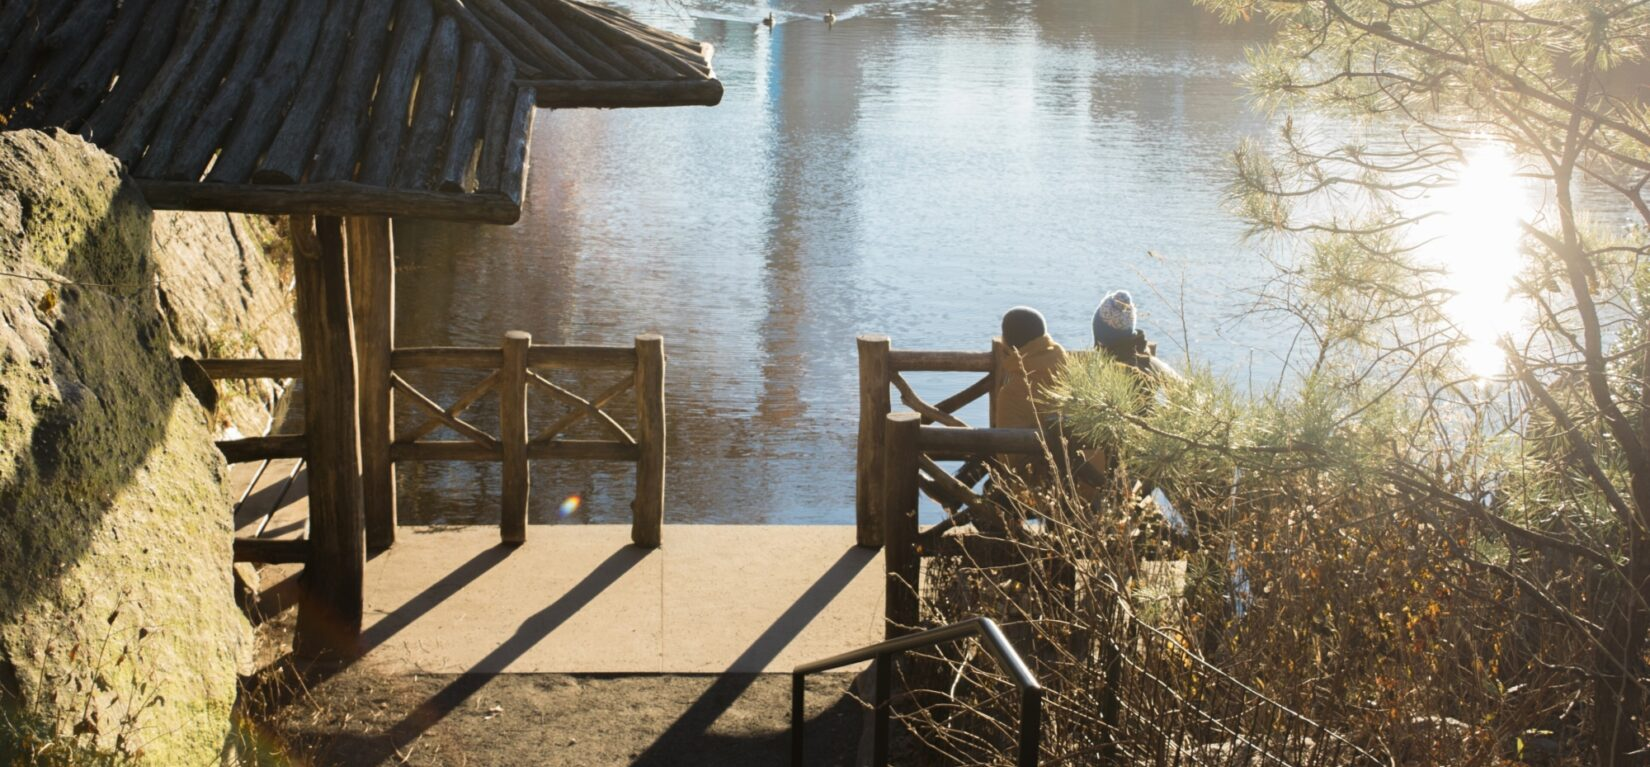 Two people enjoy a view of the Lake from a bench on the Chambers Boat Landing